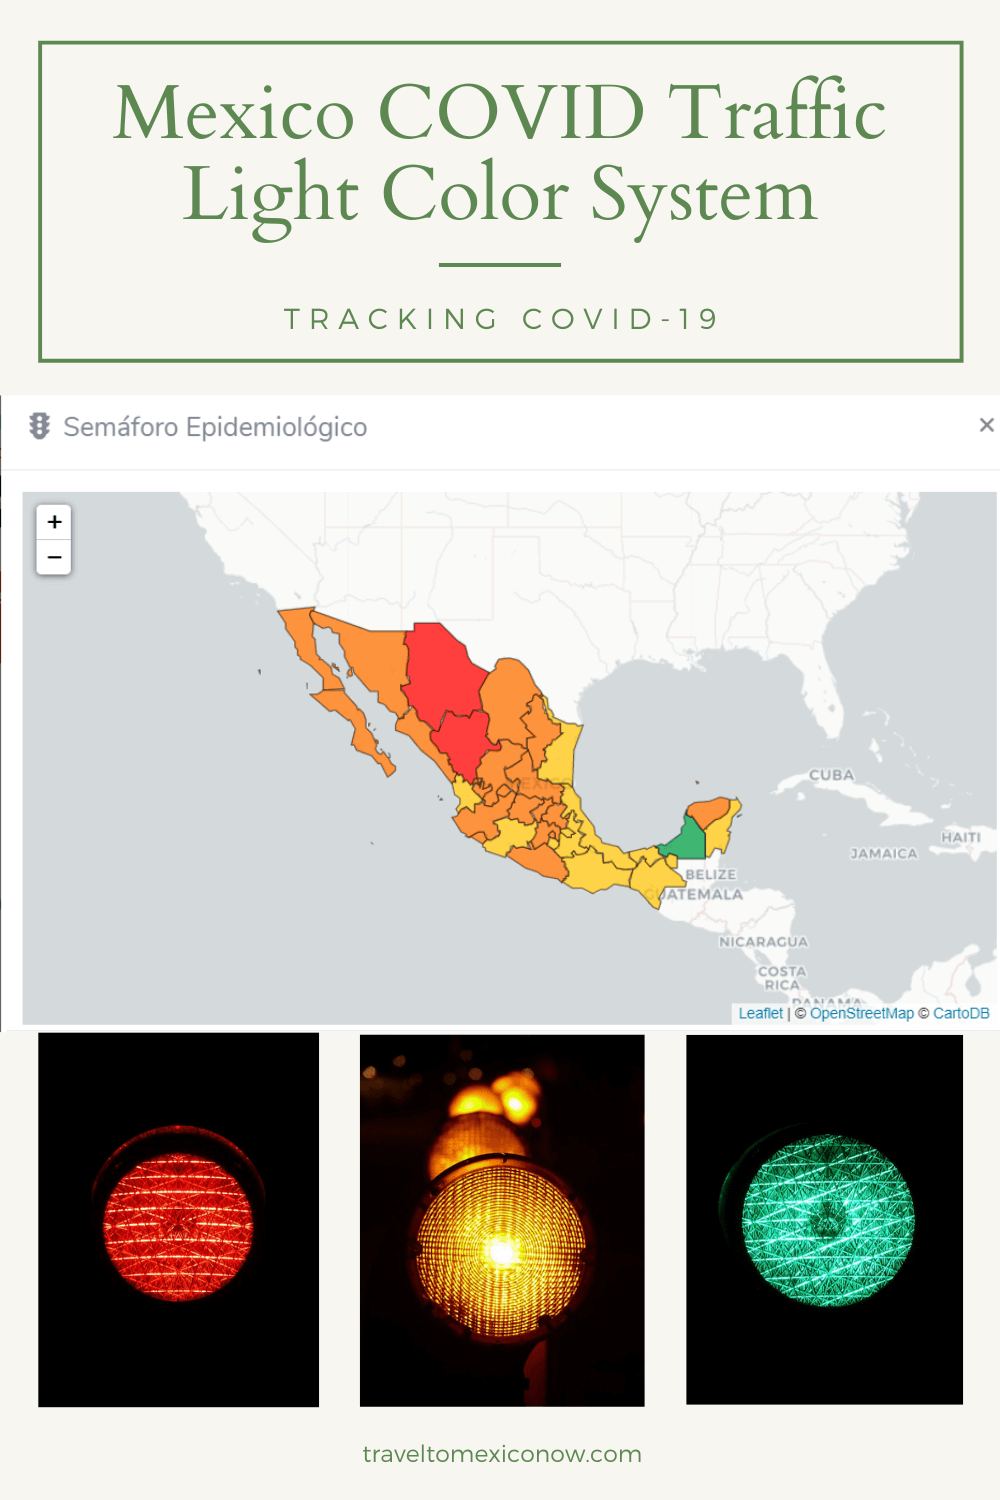 Mexico COVID Traffic Light Color System.